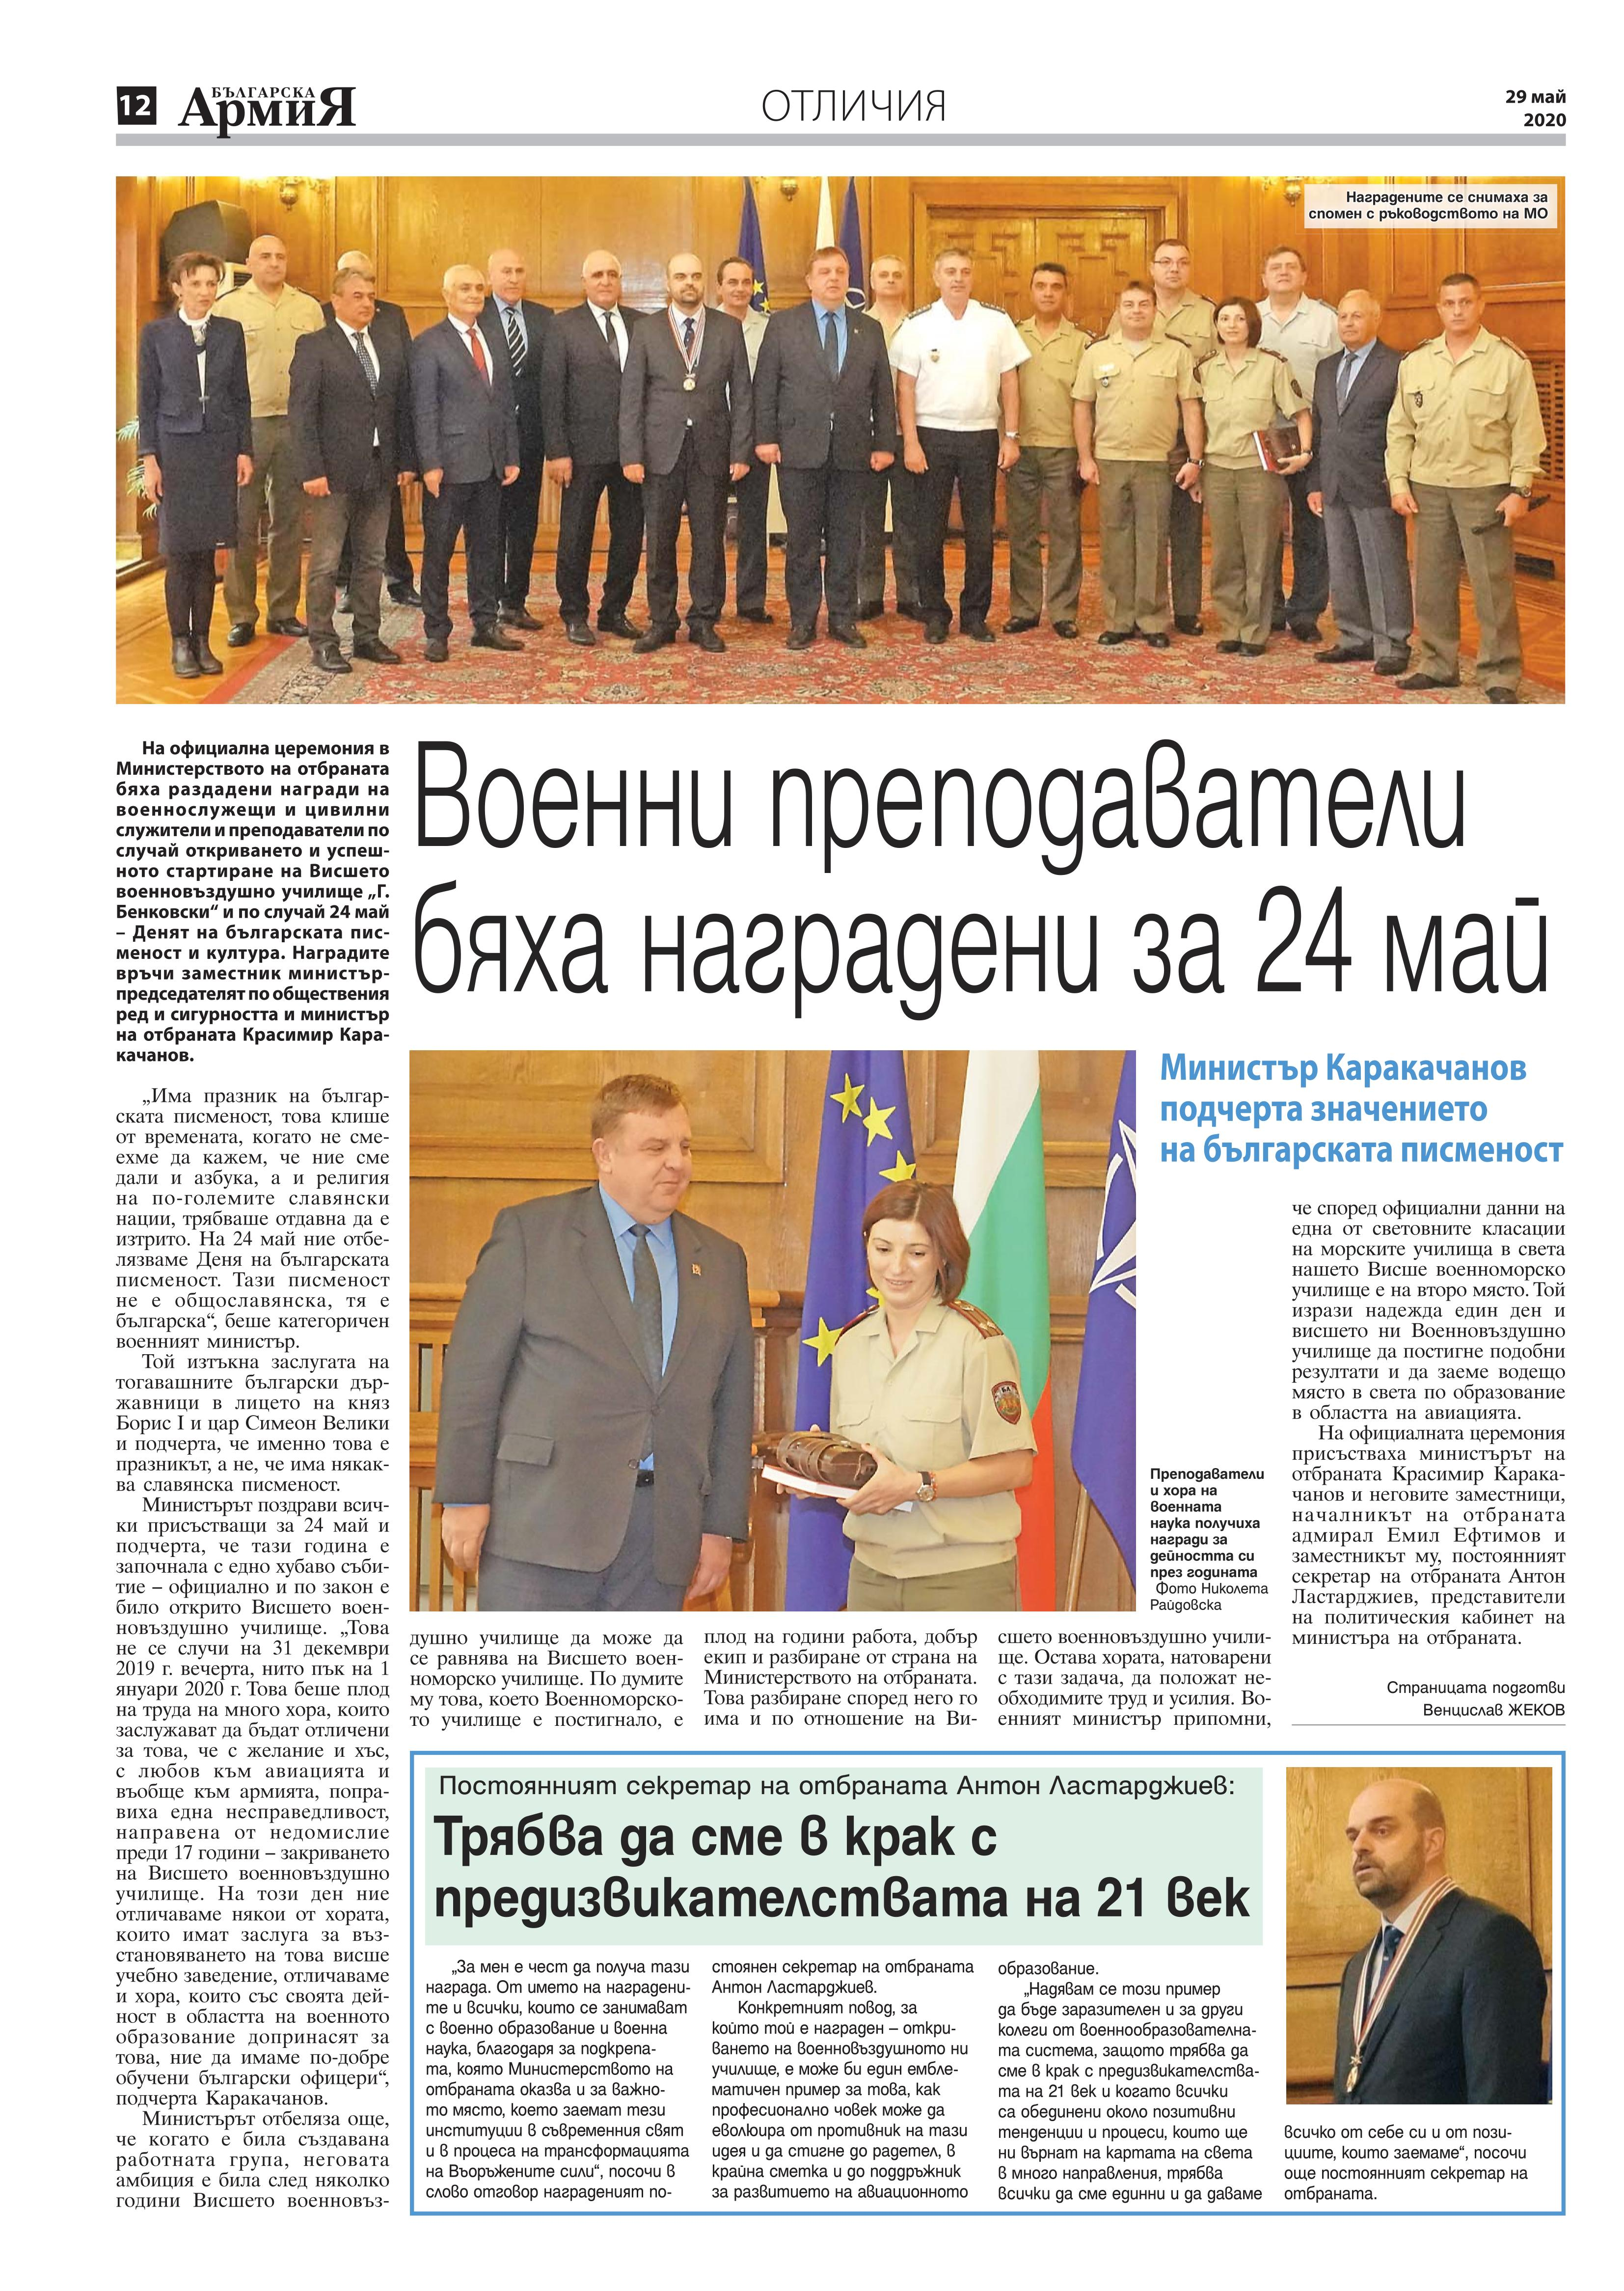 https://www.armymedia.bg/wp-content/uploads/2015/06/12.page1_-140.jpg